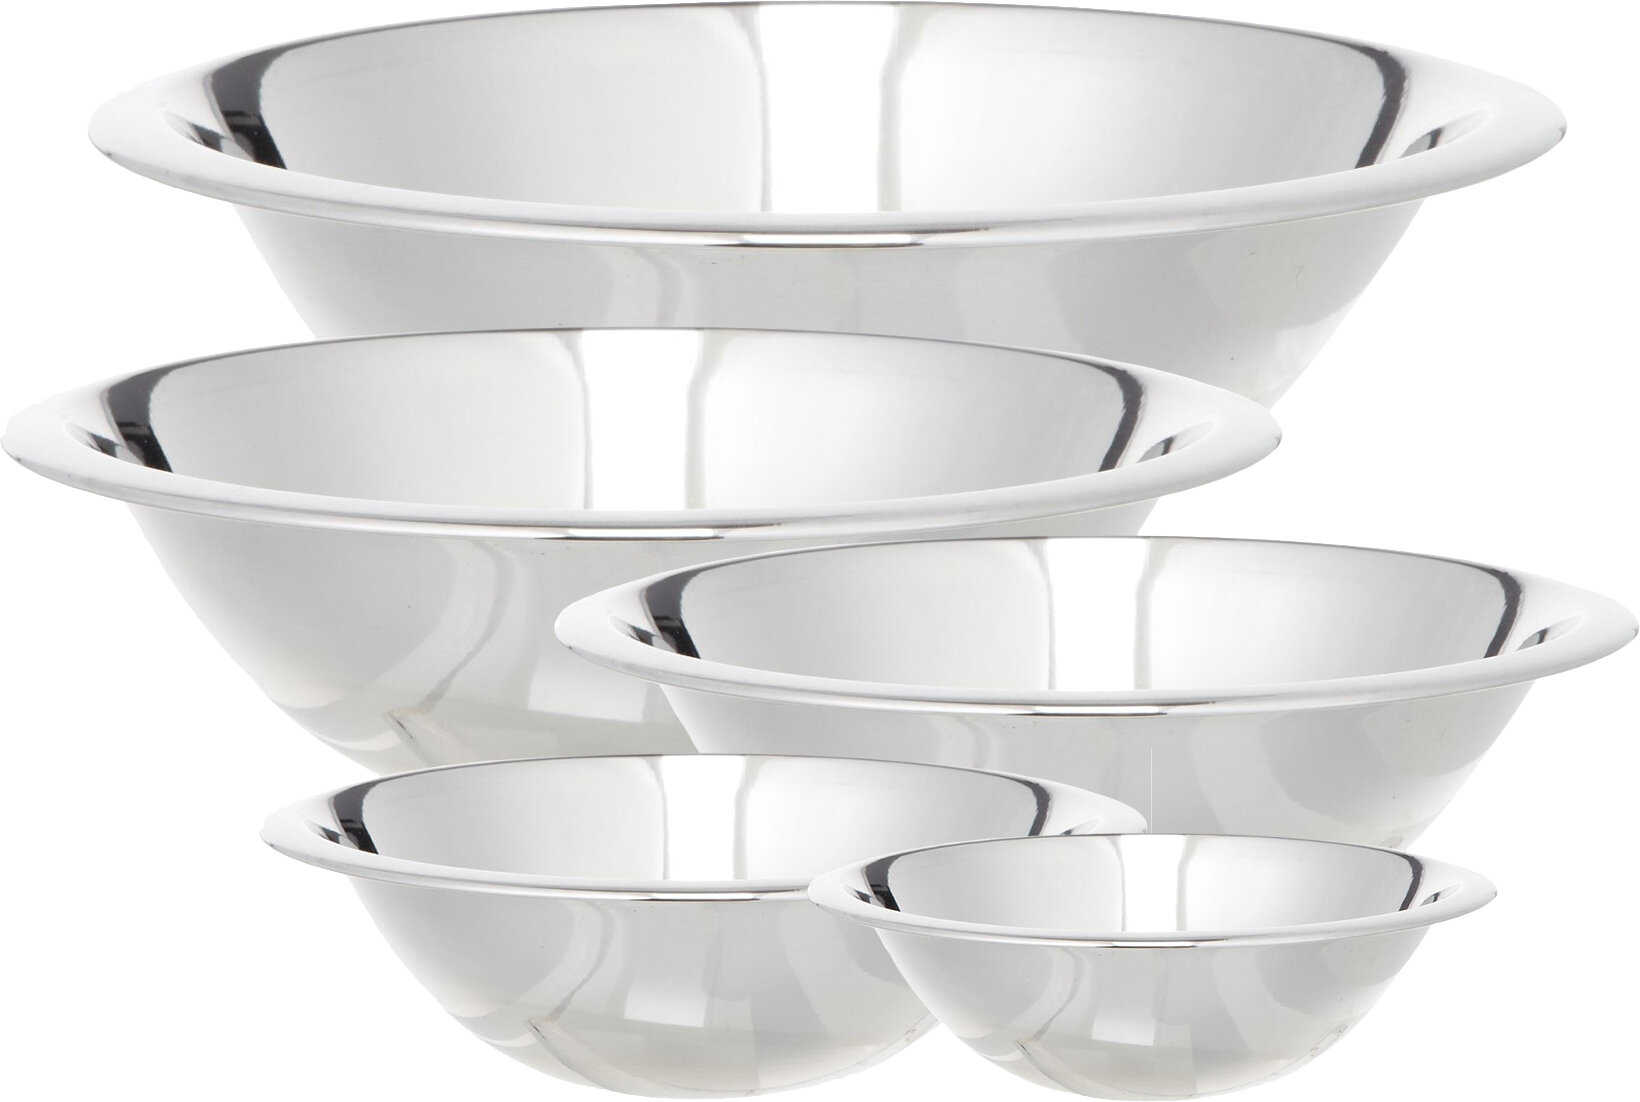 Cook Pro 5 Piece Stainless Steel Mixing Bowl Set & Reviews | Wayfair